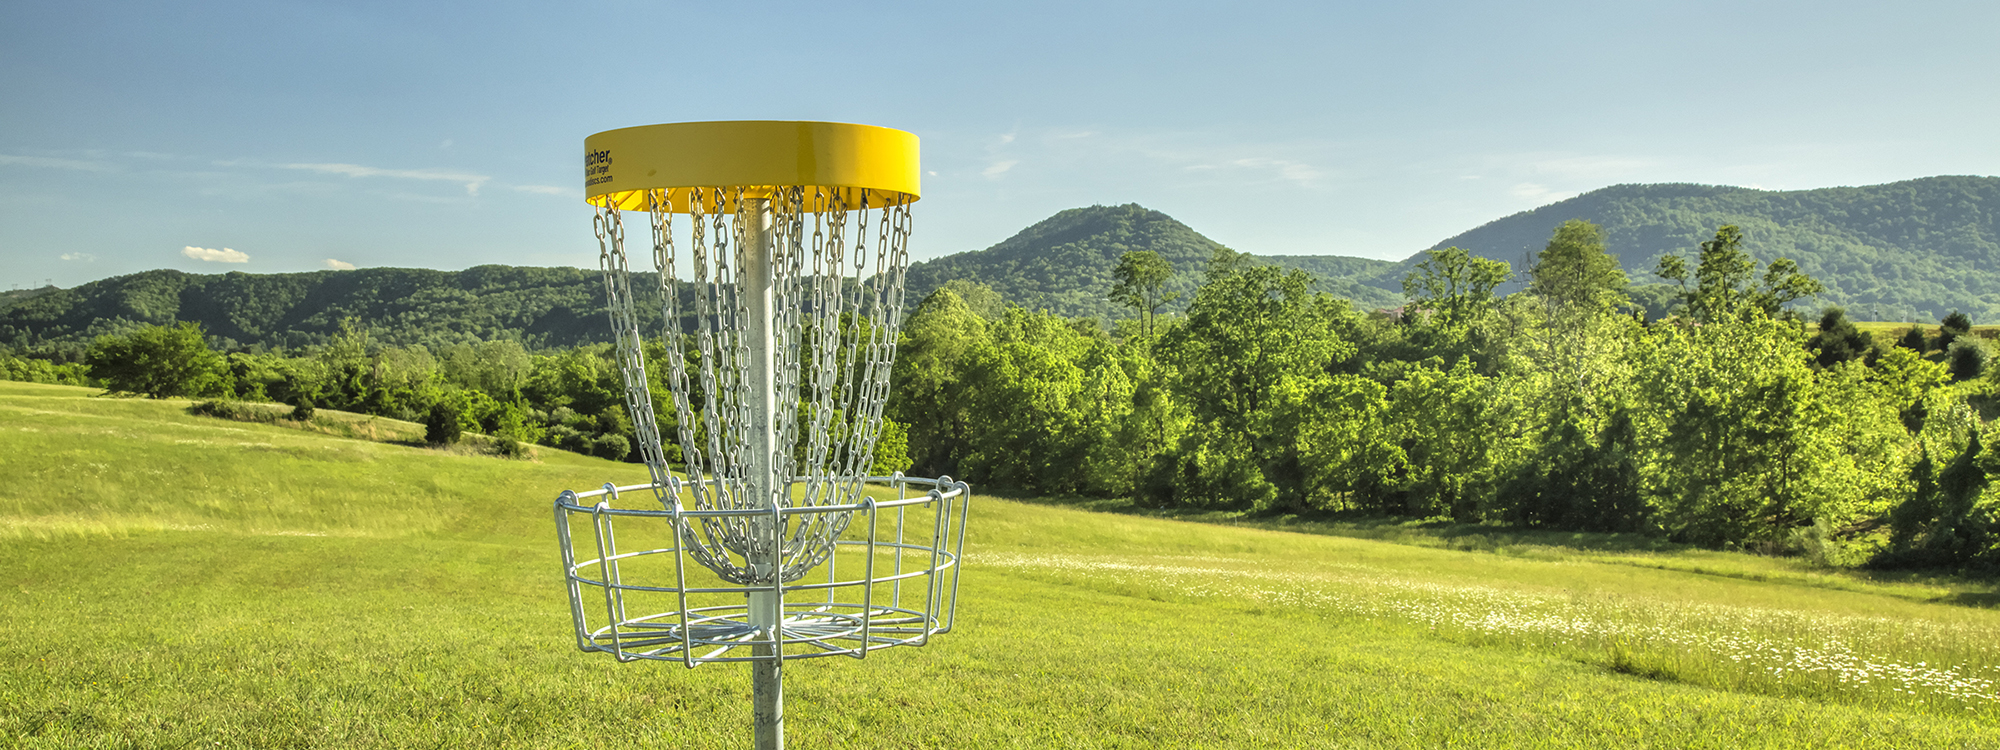 disc golf View and review over 8000 disc golf courses, track courses you've played and want to play, track your scores, organize and trade your discs, connect with other disc golfers, and talk disc golf in our forums.